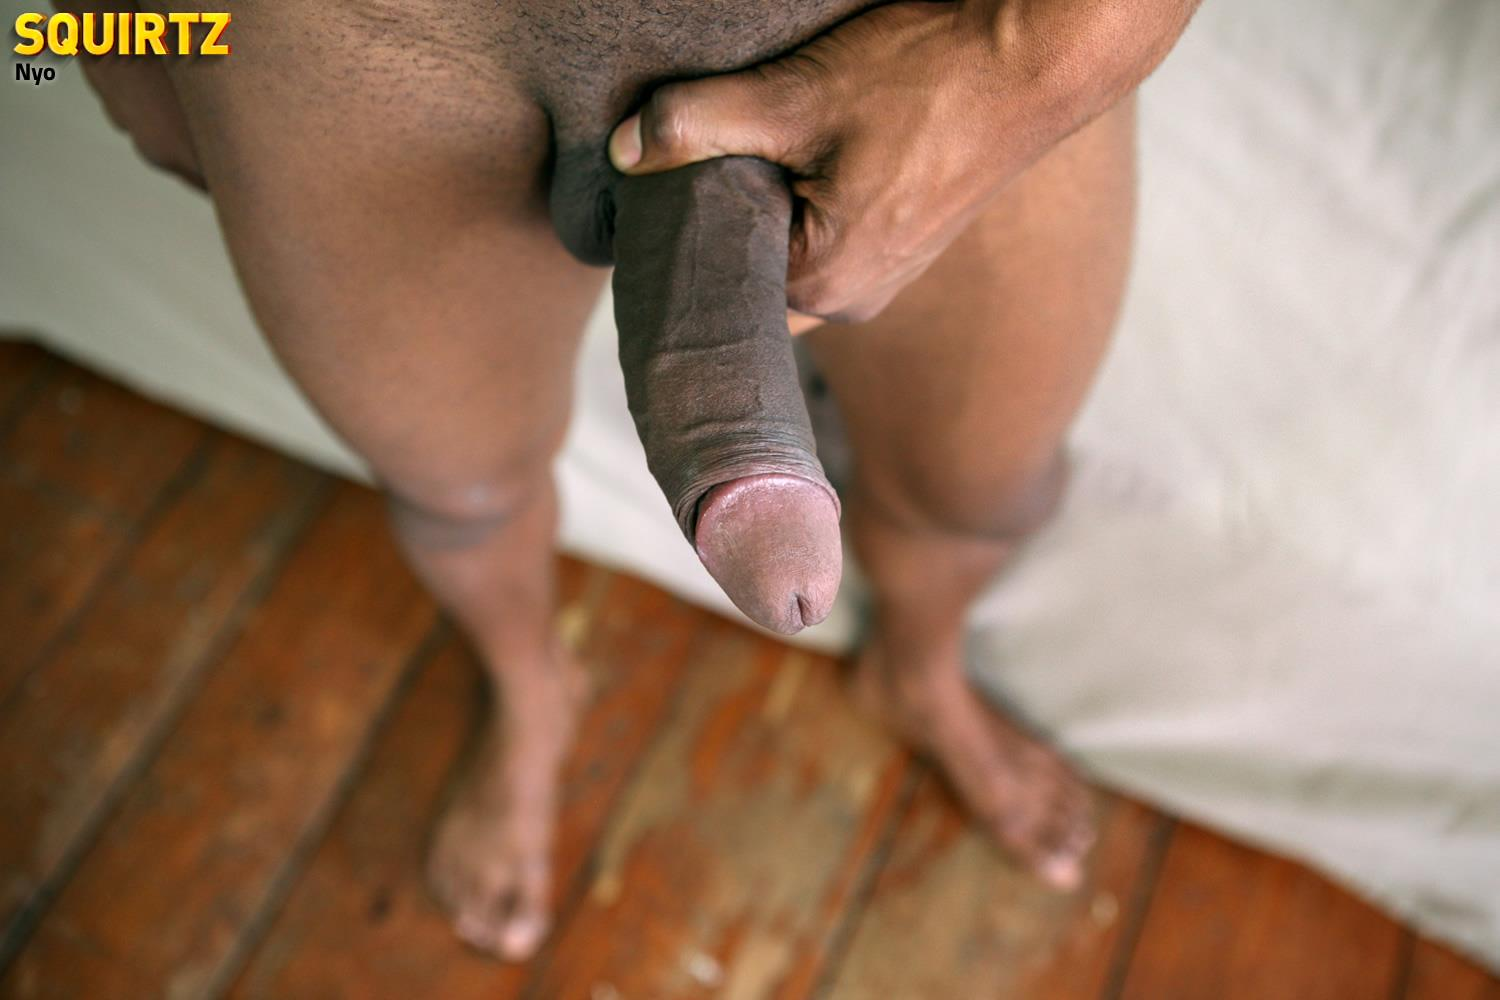 black cock shooting cum close up